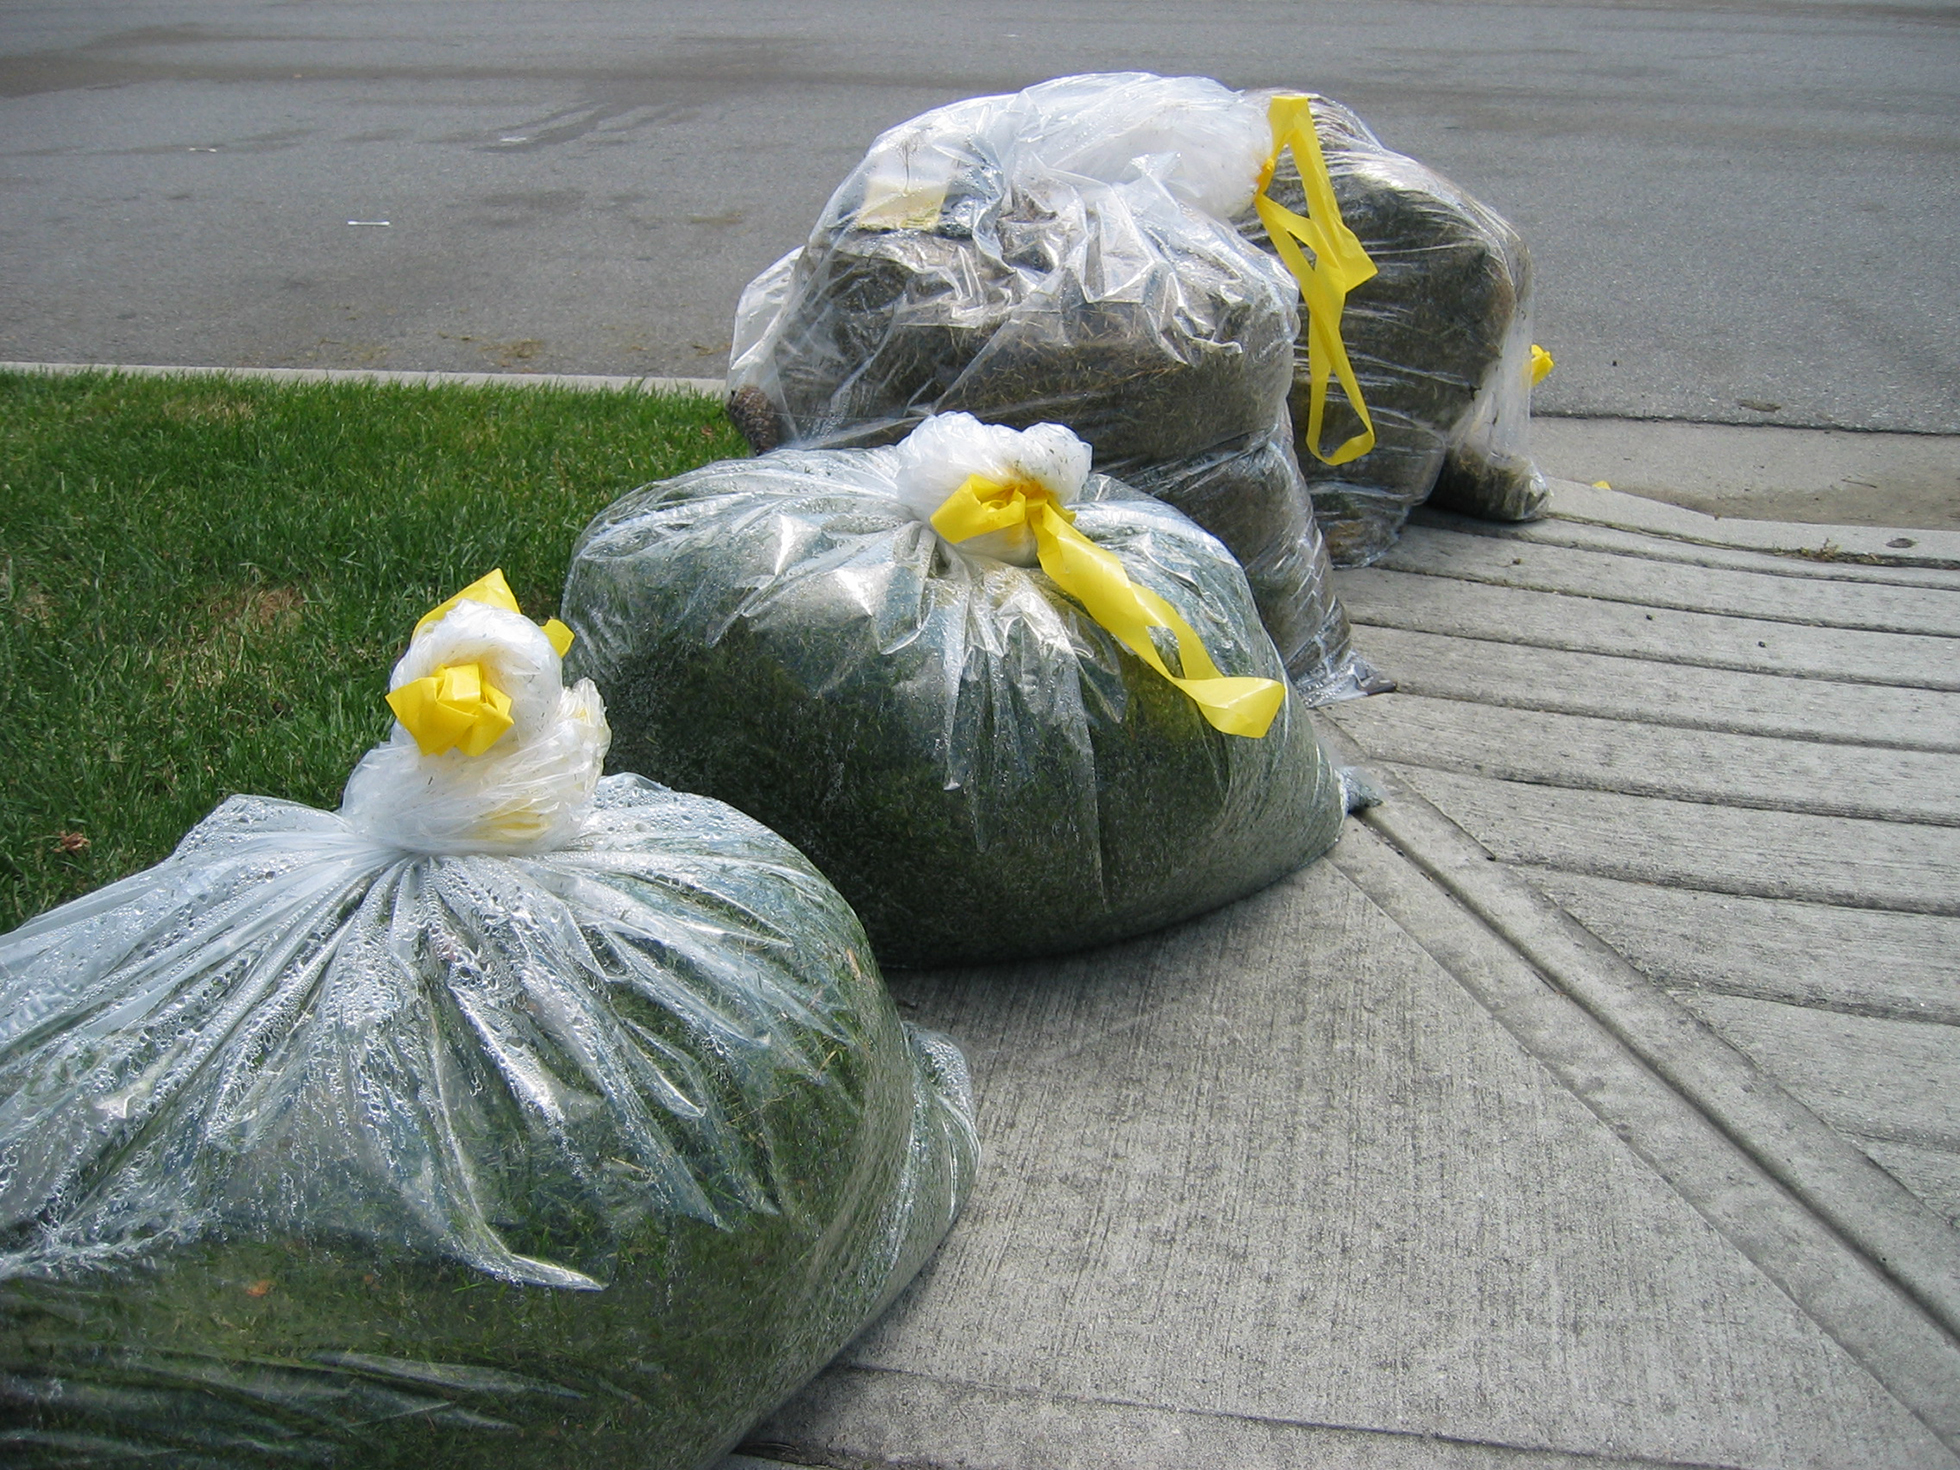 Four garbage bags full of lawn clippings on drive way